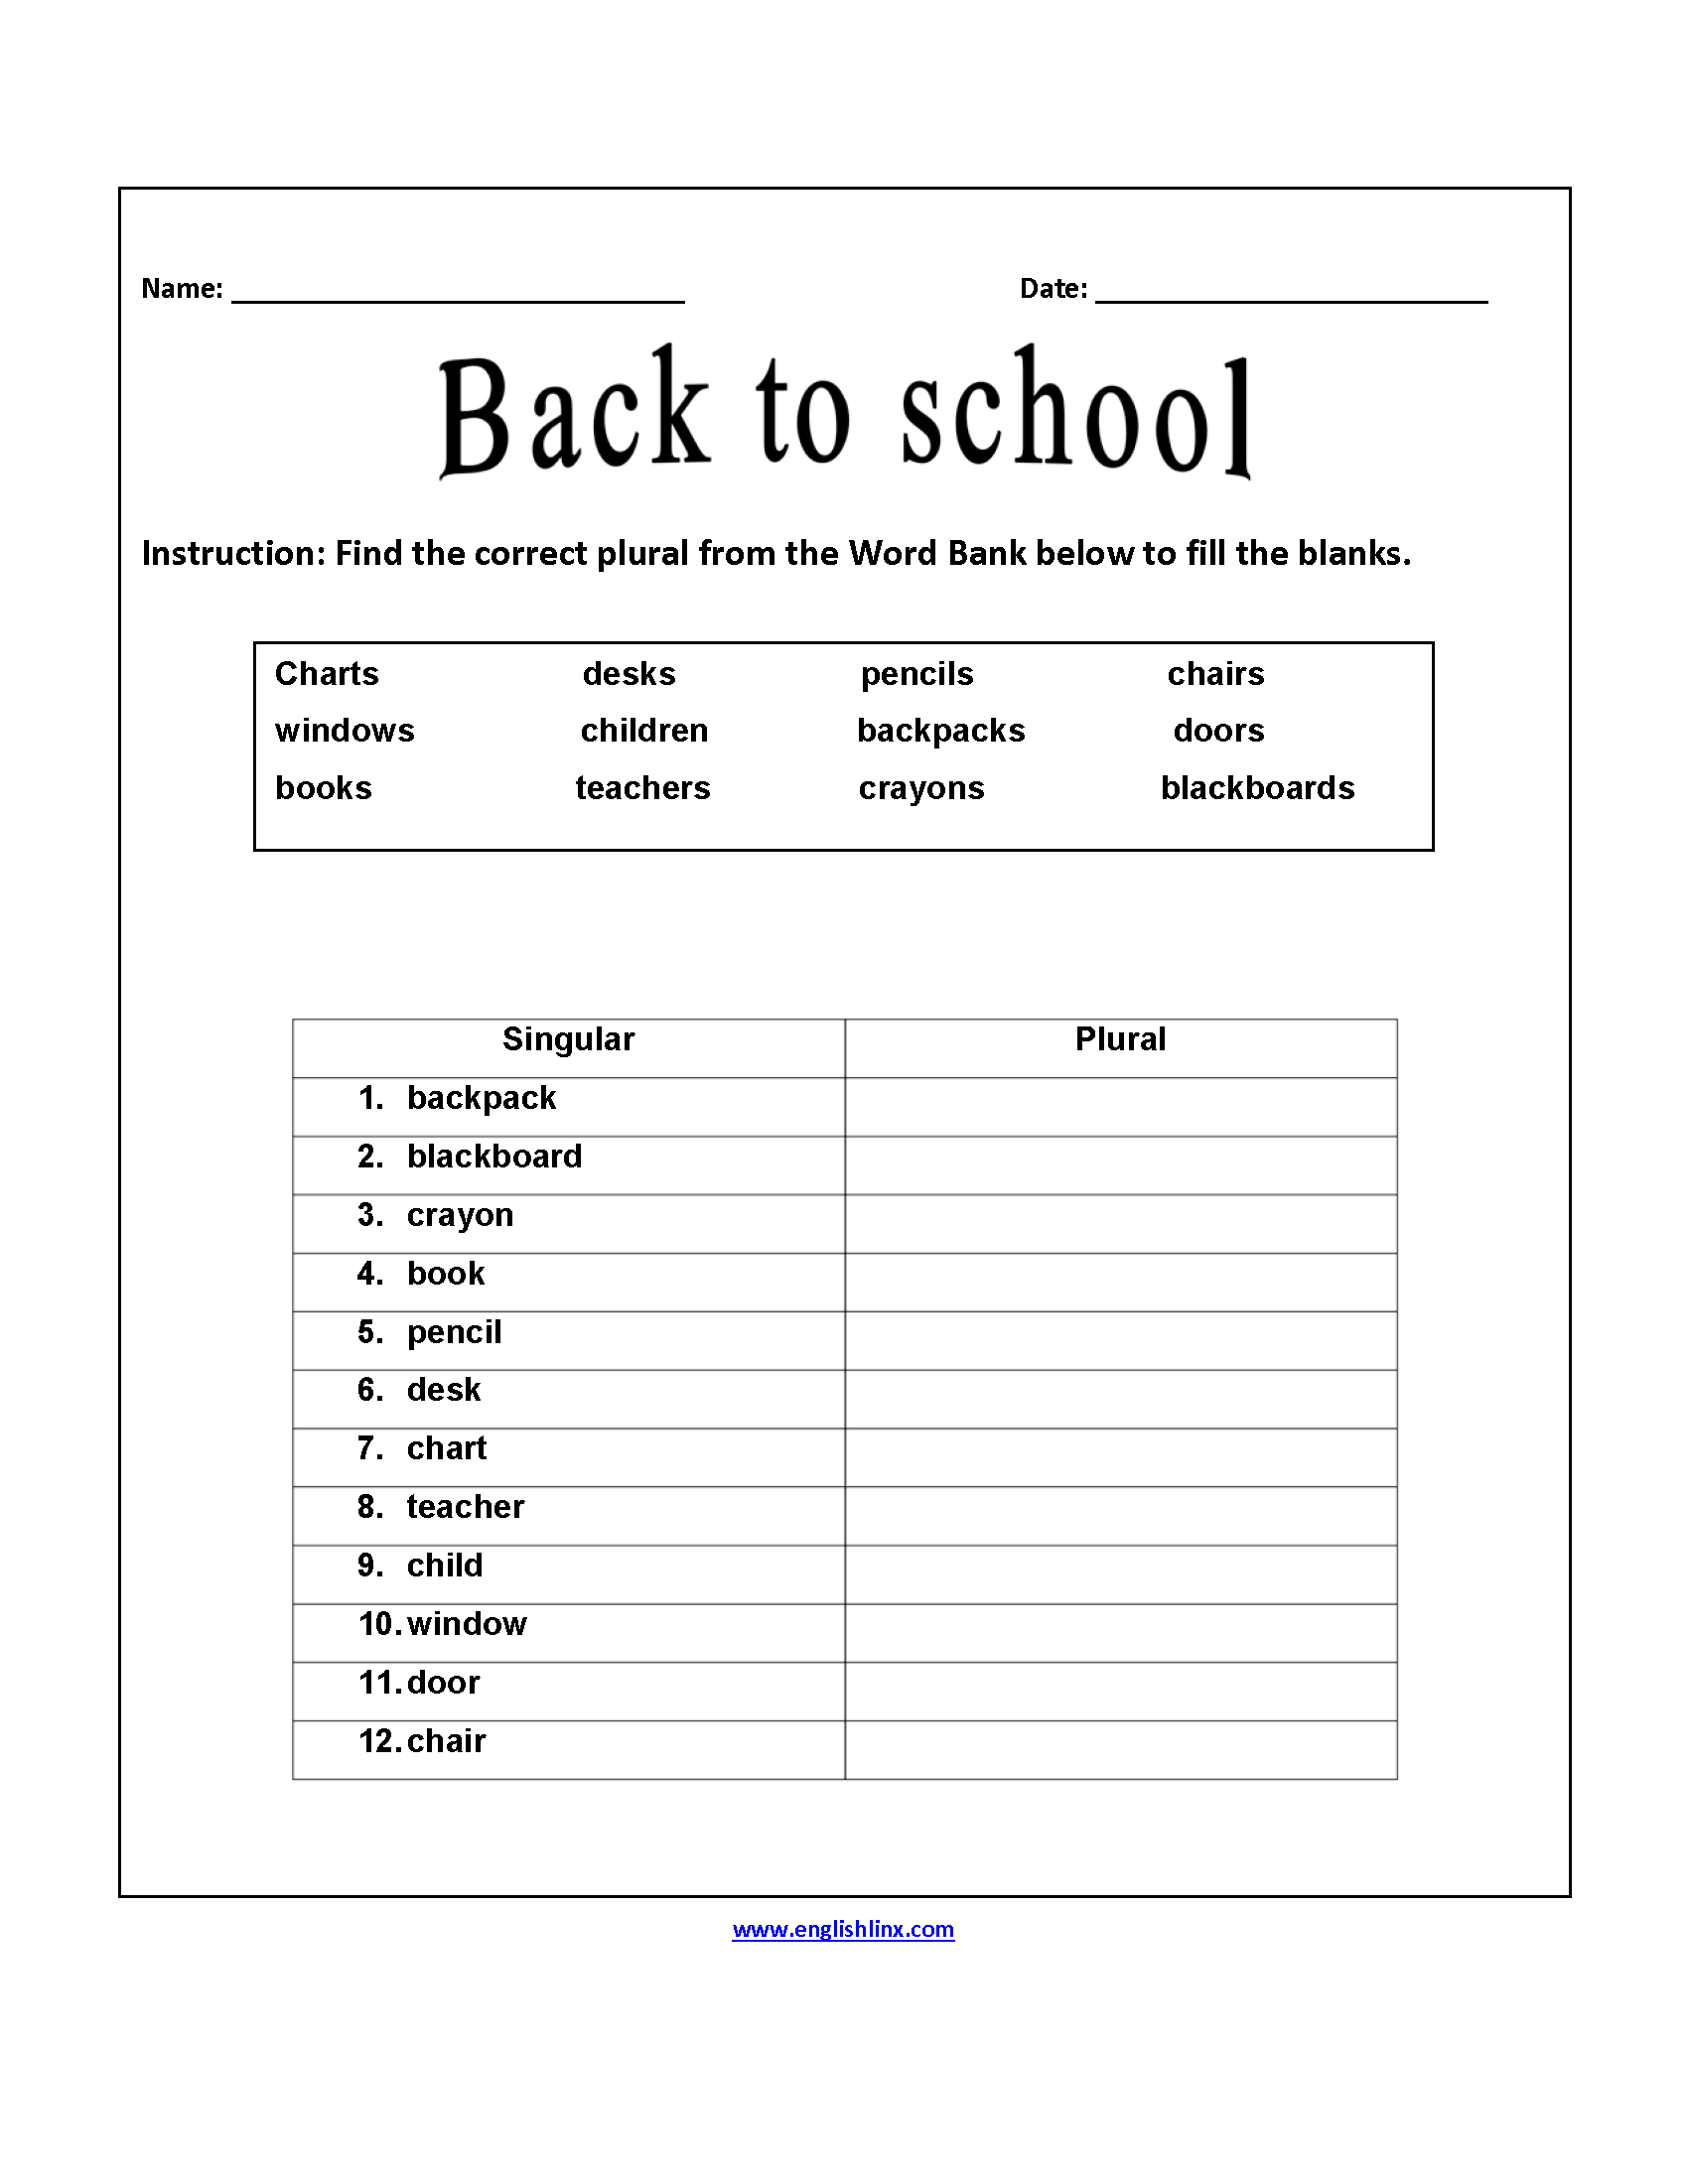 School Worksheets For 4th Graders : Correct plurals back to school worksheets